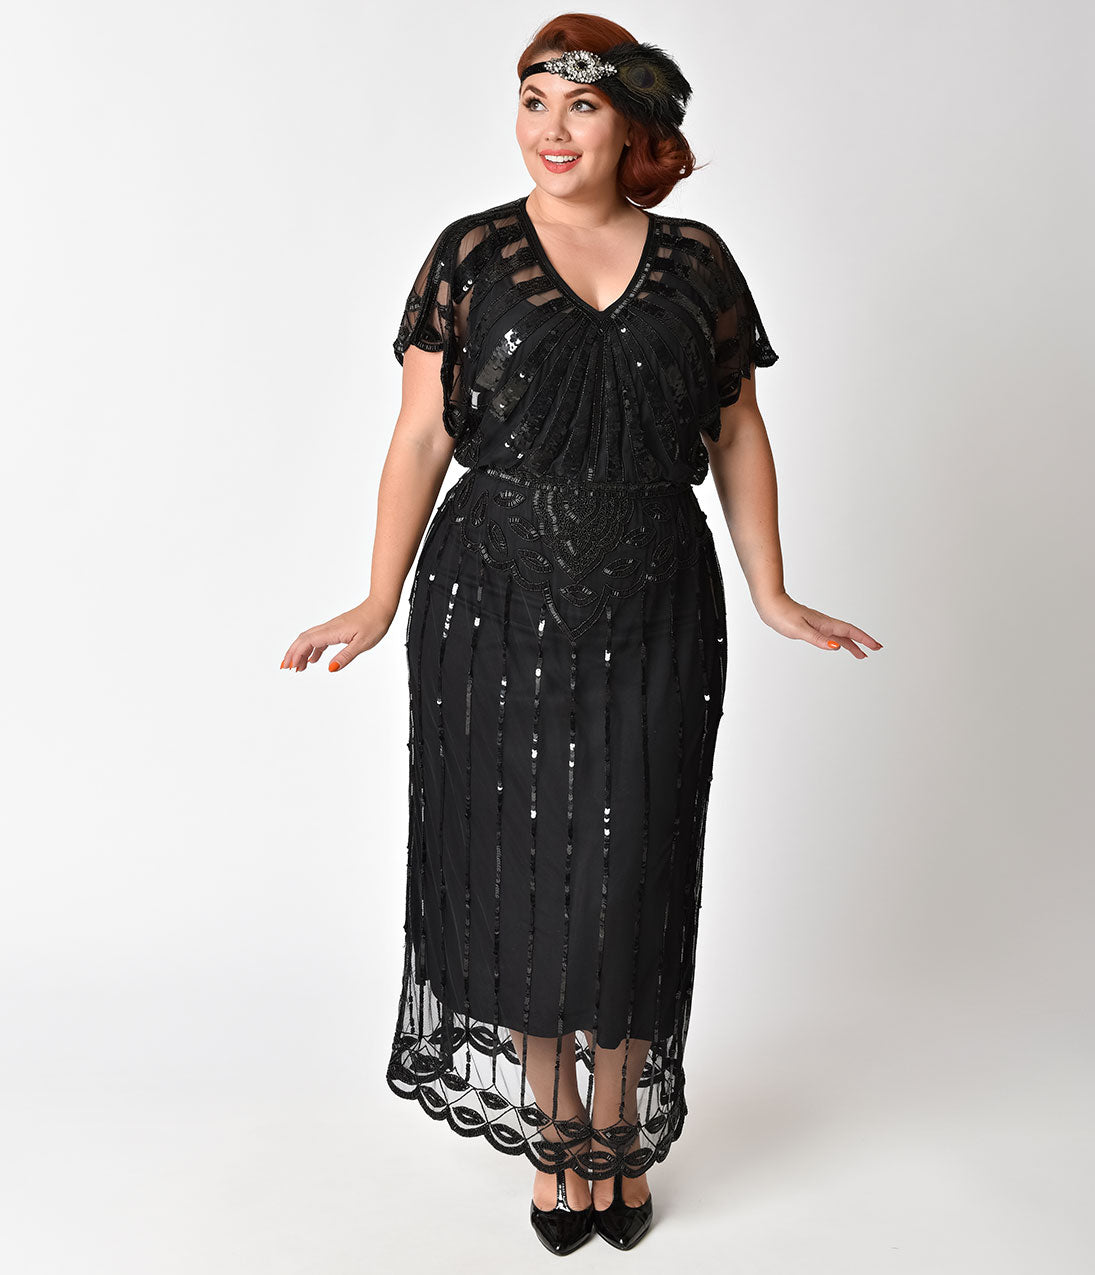 1920s Style Dresses, Flapper Dresses Plus Size 1920s Black Beaded Deco Angelina Maxi Flapper Dress $158.00 AT vintagedancer.com